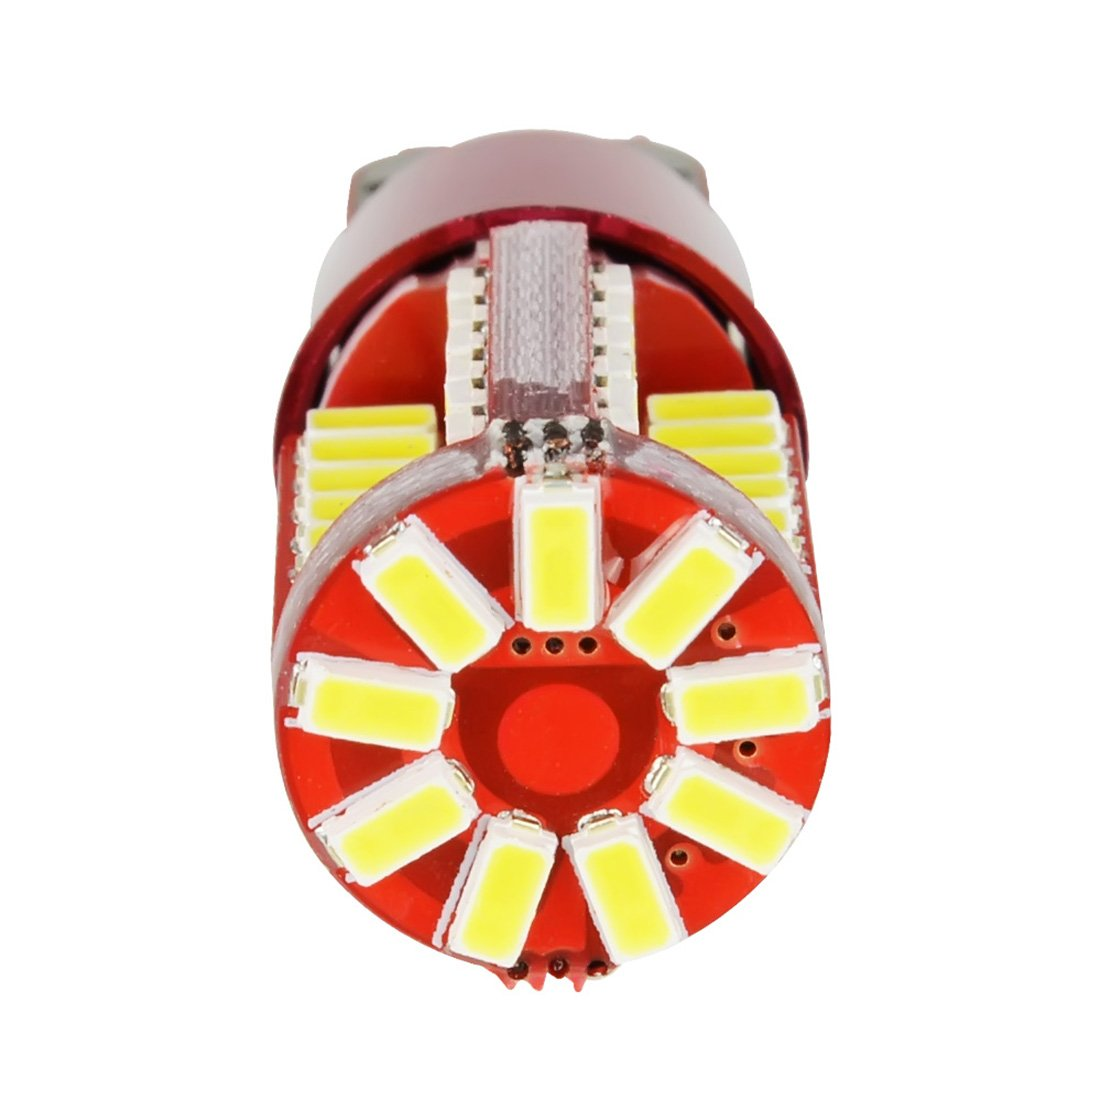 Safego 2x Bombillas W5W T10 Wedge LED 57SMD 3014 Luz Interior del Coche Laterales Blanco Xenon 194 168 6500K 12V: Amazon.es: Coche y moto